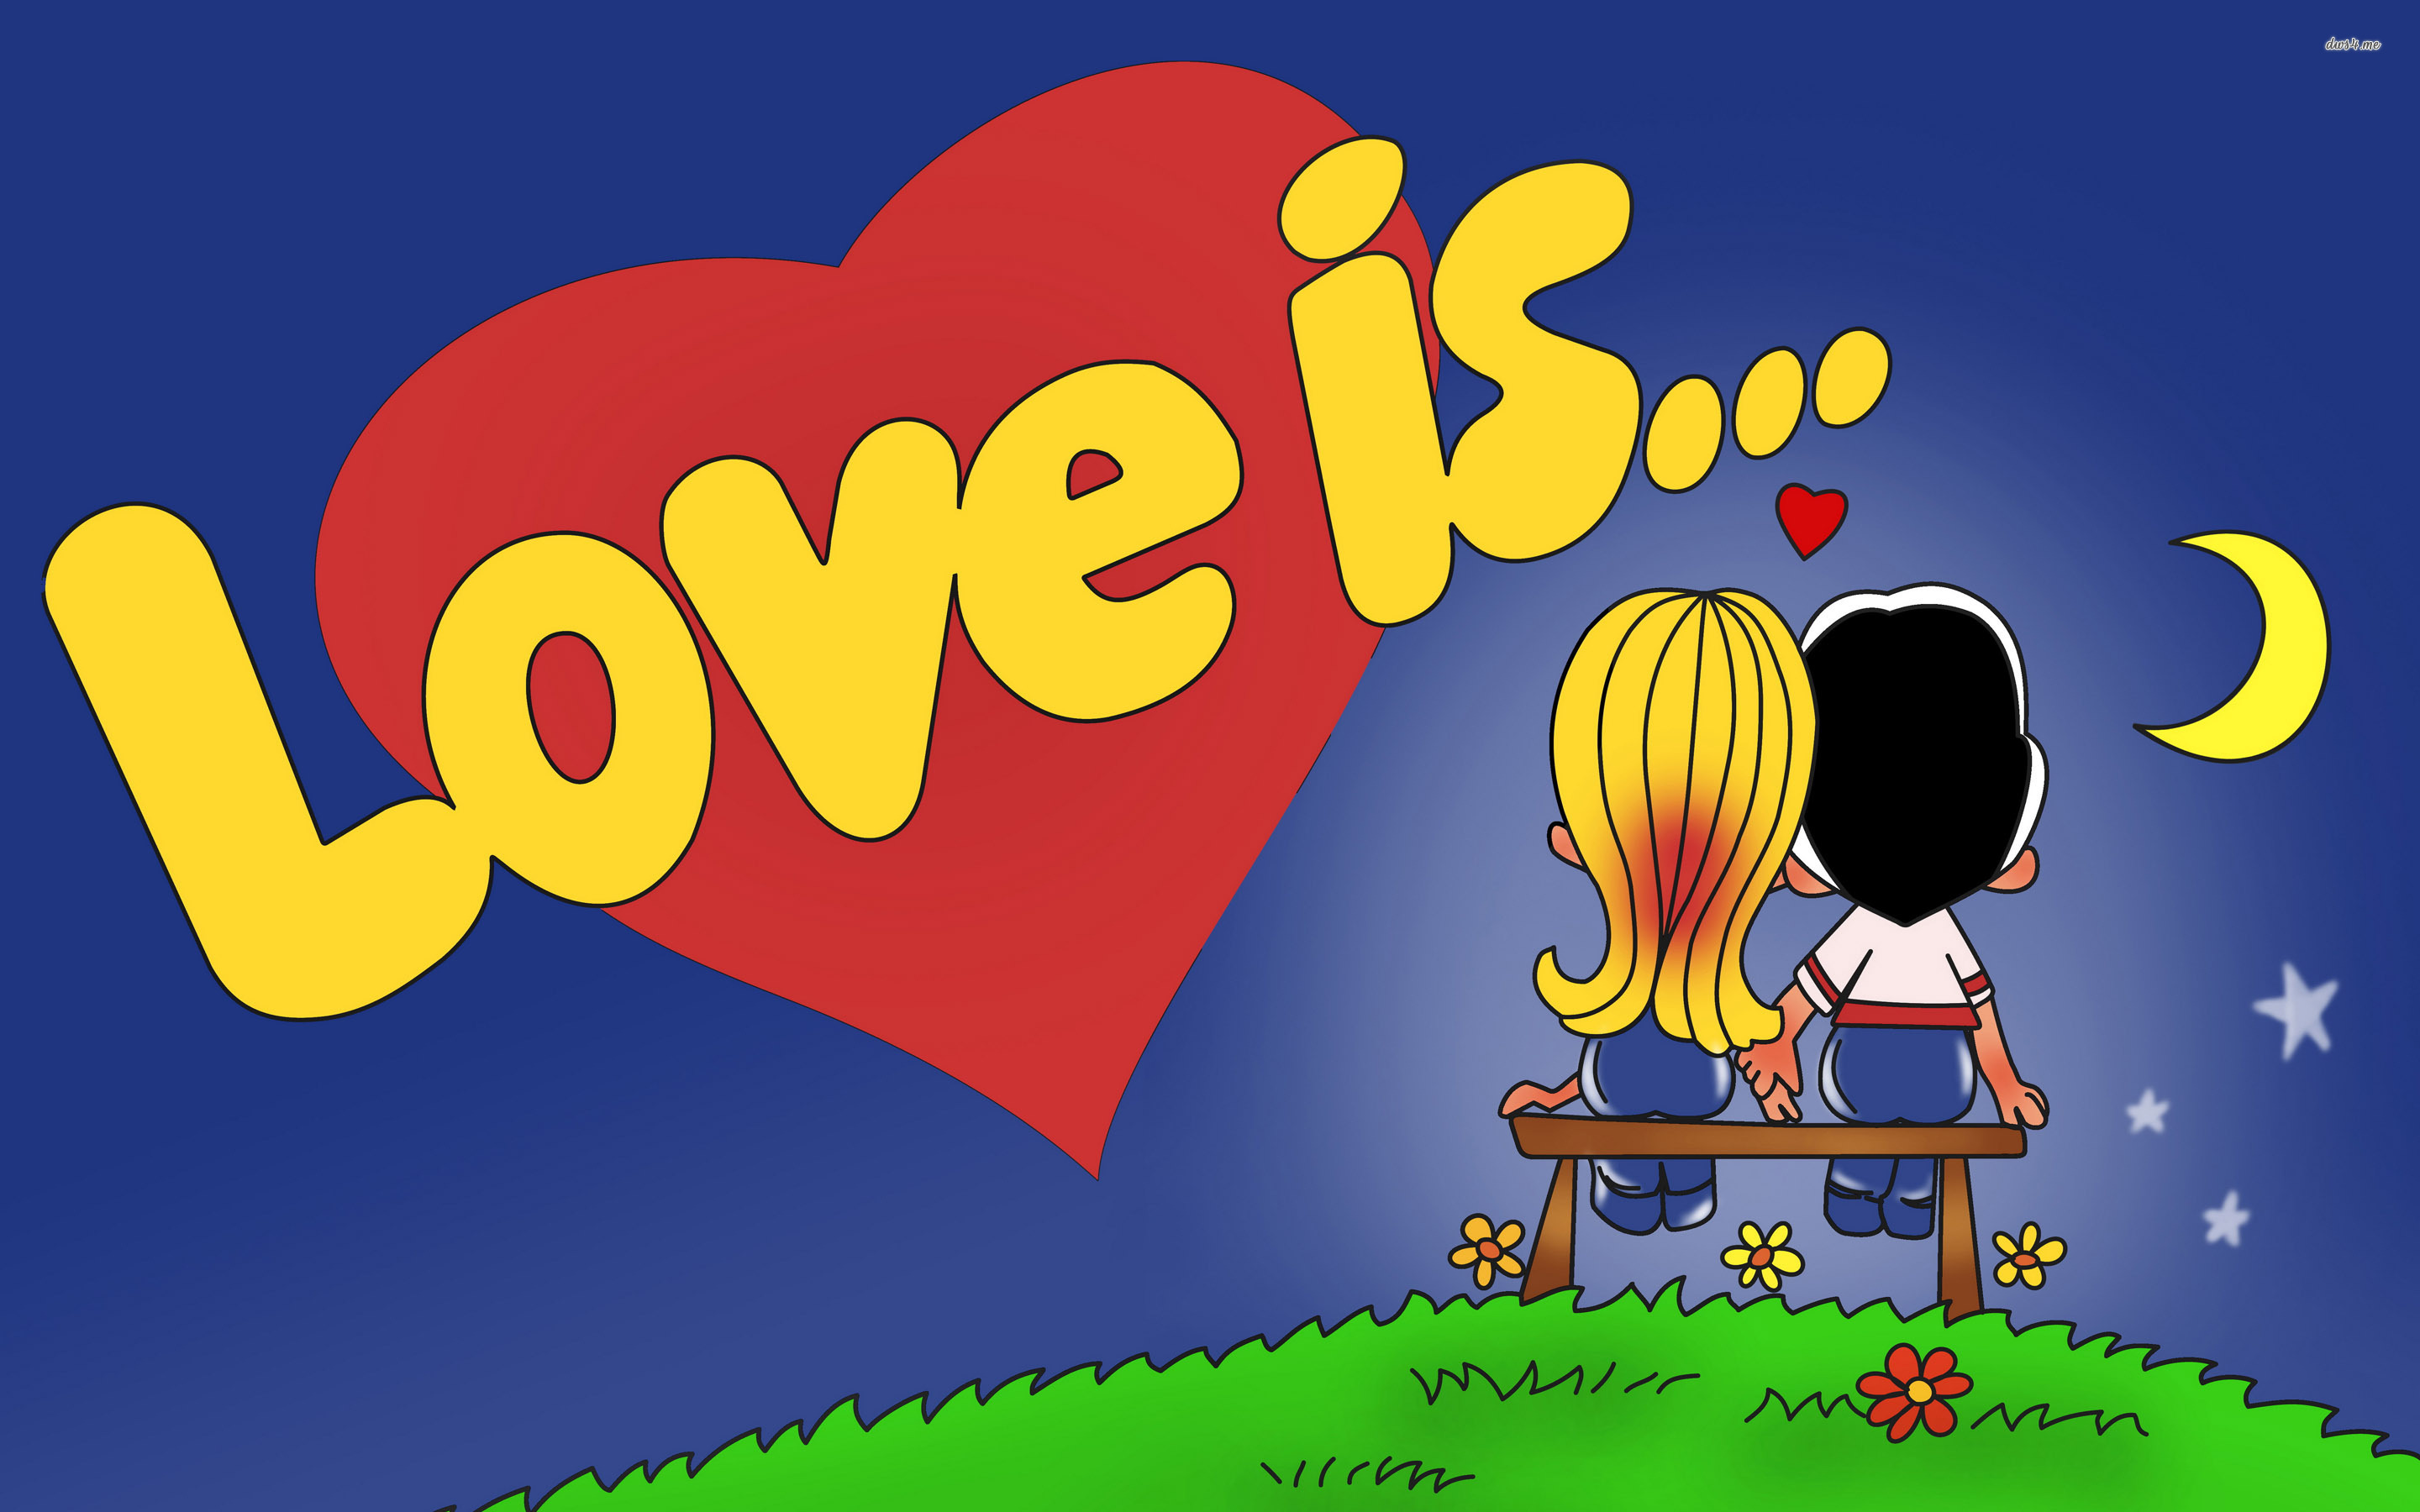 Cute Couples With Quotes Wallpaper Free Love Cartoon Couple Wallpaper Download Free Clip Art